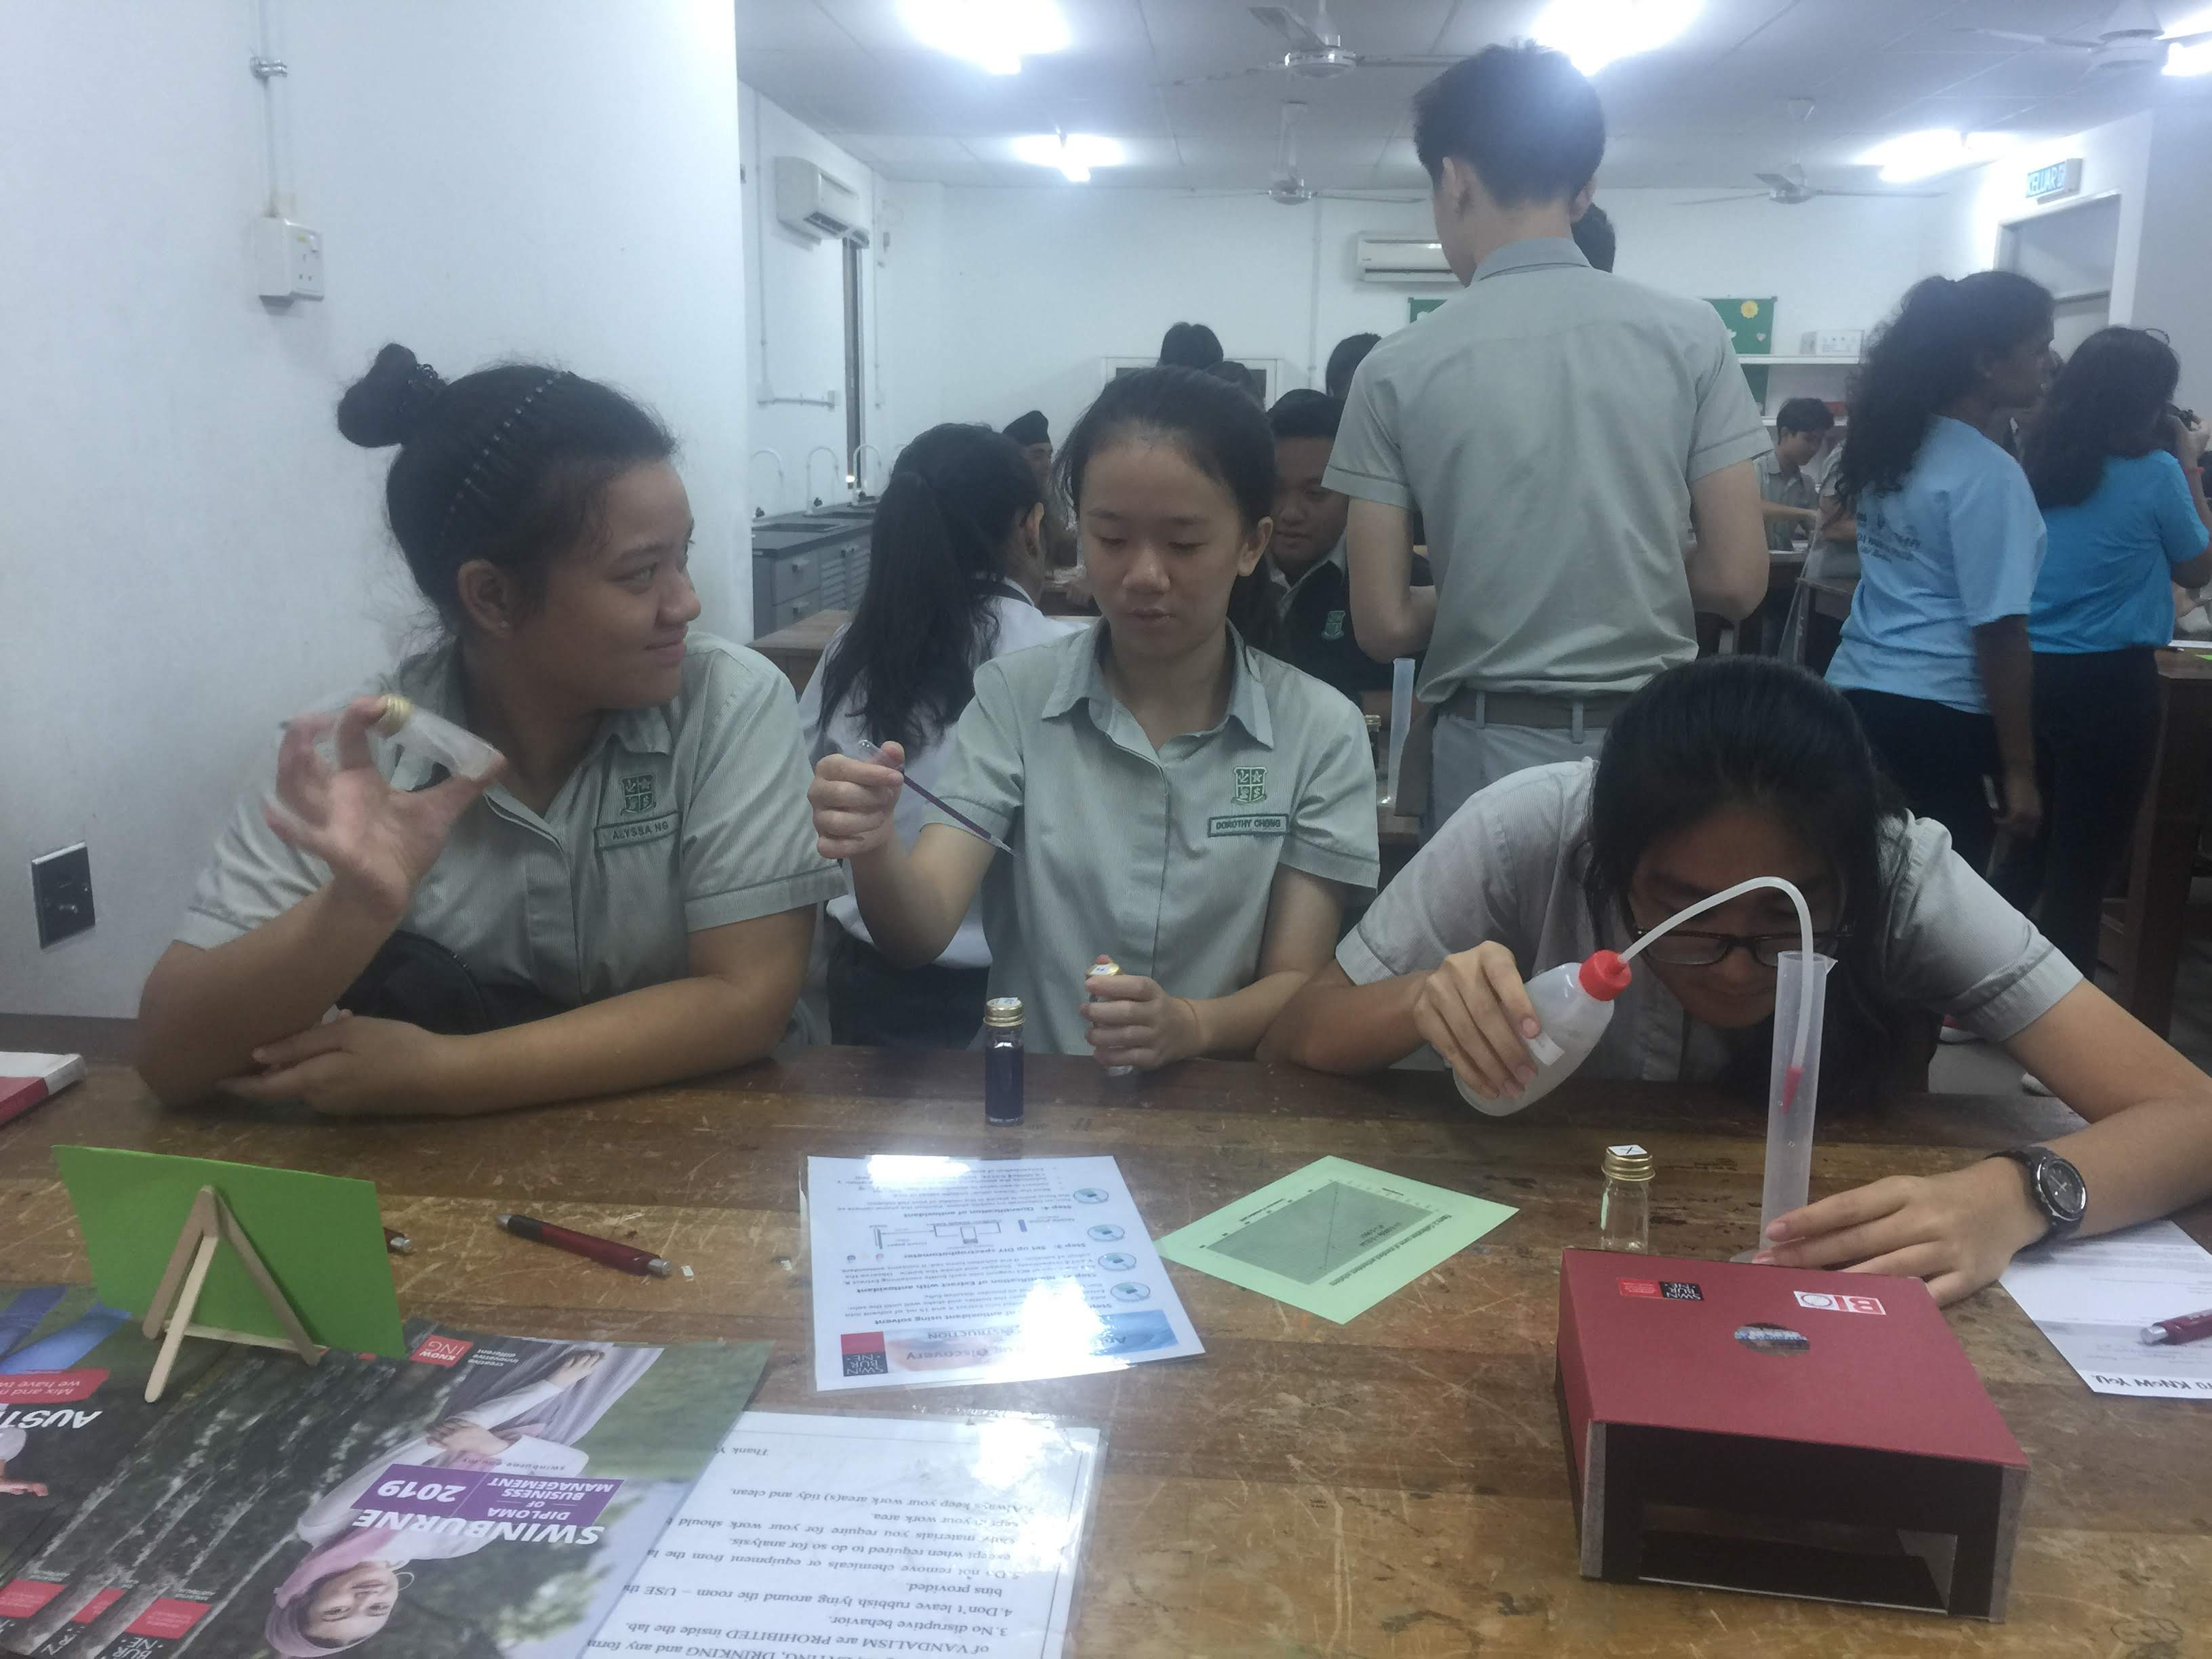 Students engaged in their hands-on activity during the workshop